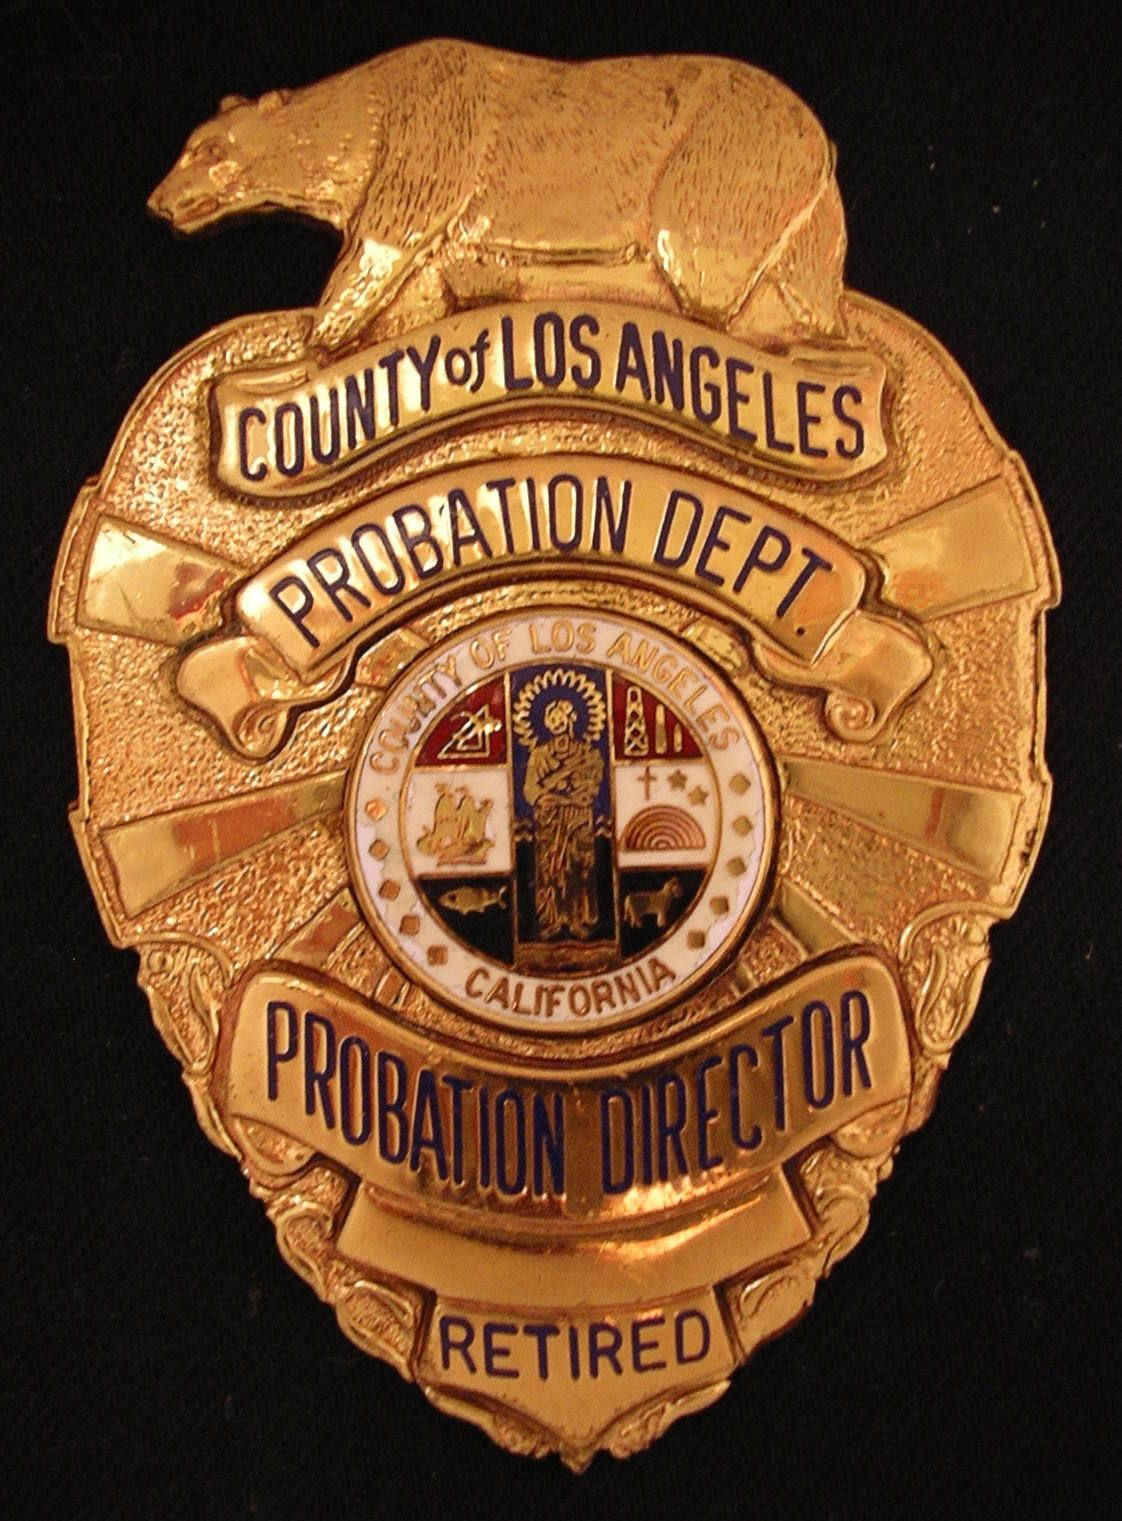 Probation Director City Of Los Angeles County Probation Department Retired Police Badge Los Angeles County